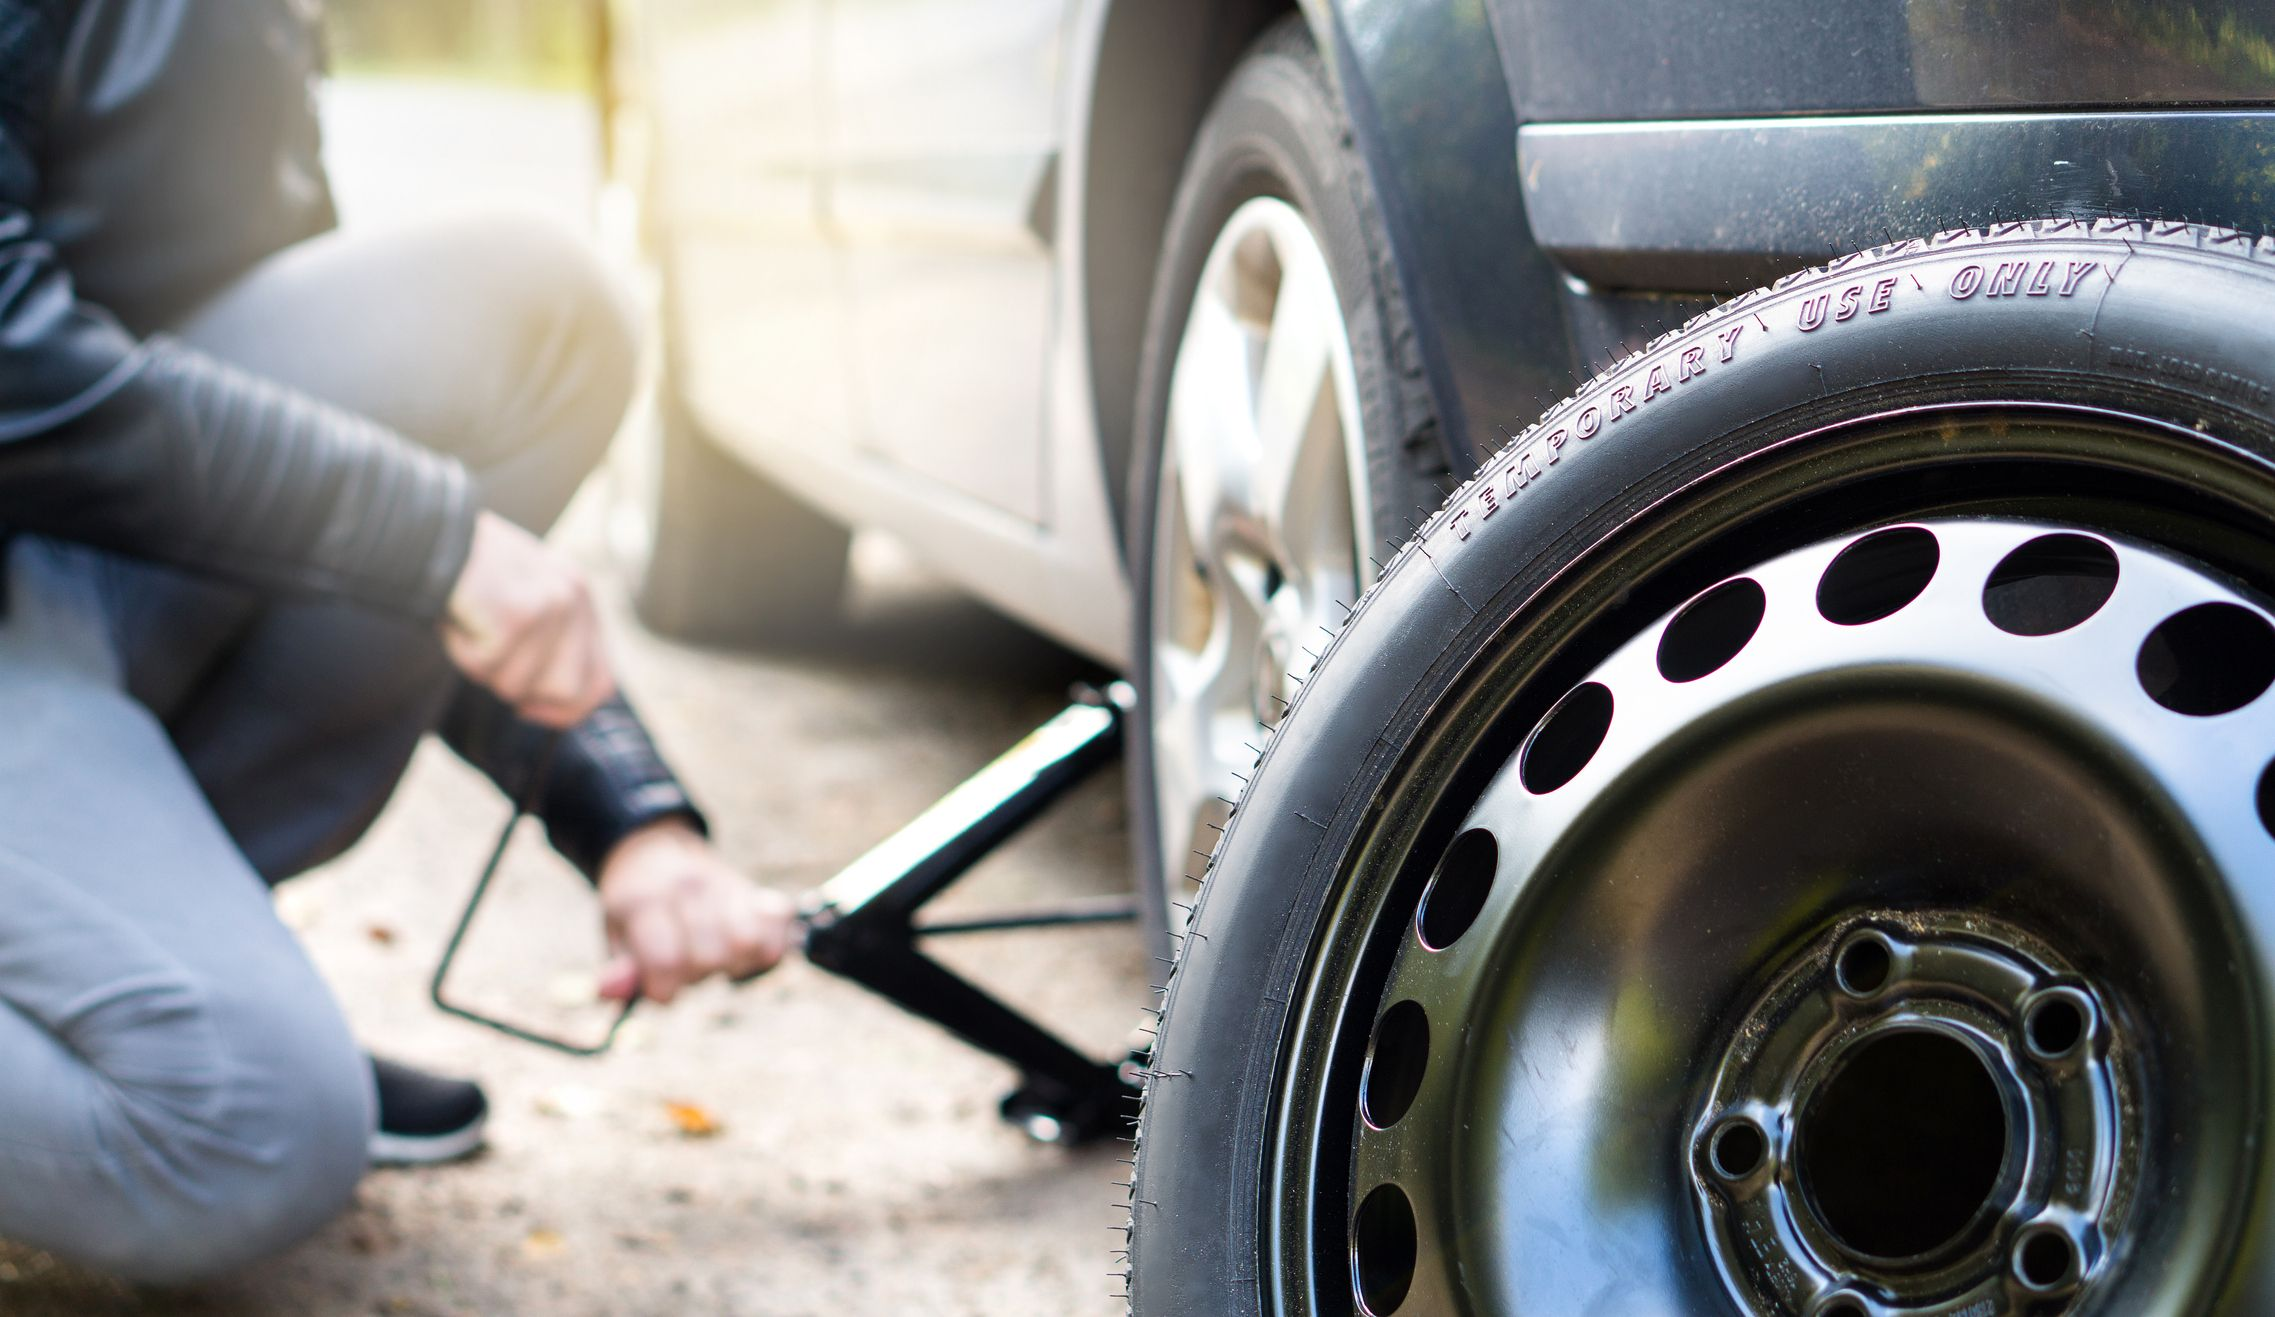 Remove Tire Rubber From Car Paint, How To Change A Flat Tire In 5 Easy Steps, Remove Tire Rubber From Car Paint